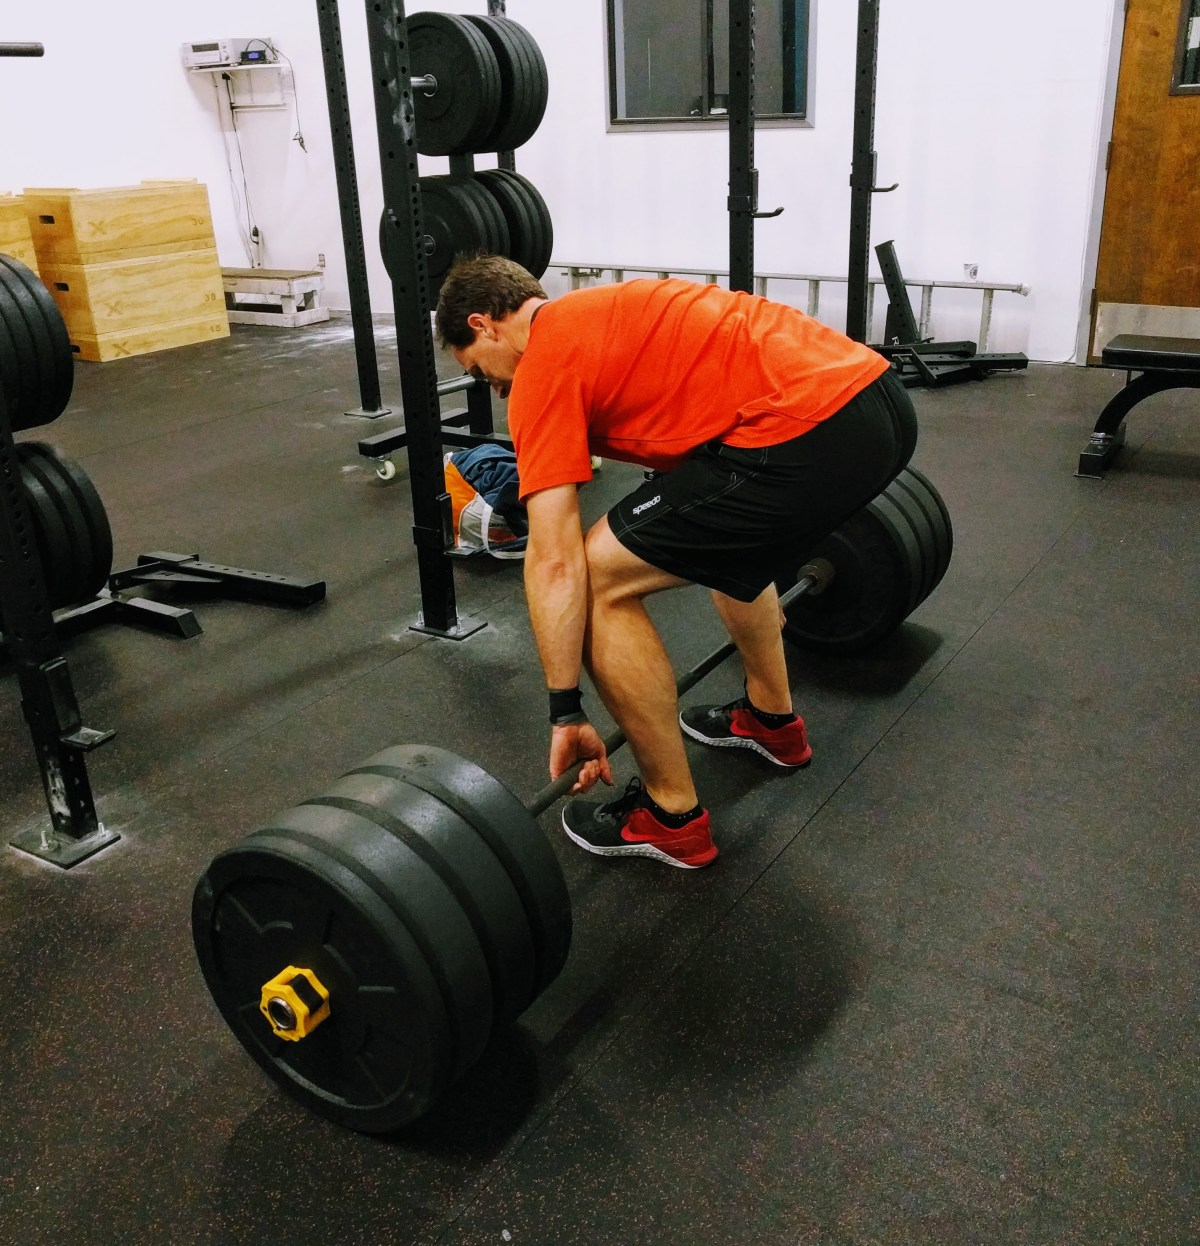 What type of HIIT works best? Heavy deadlifting